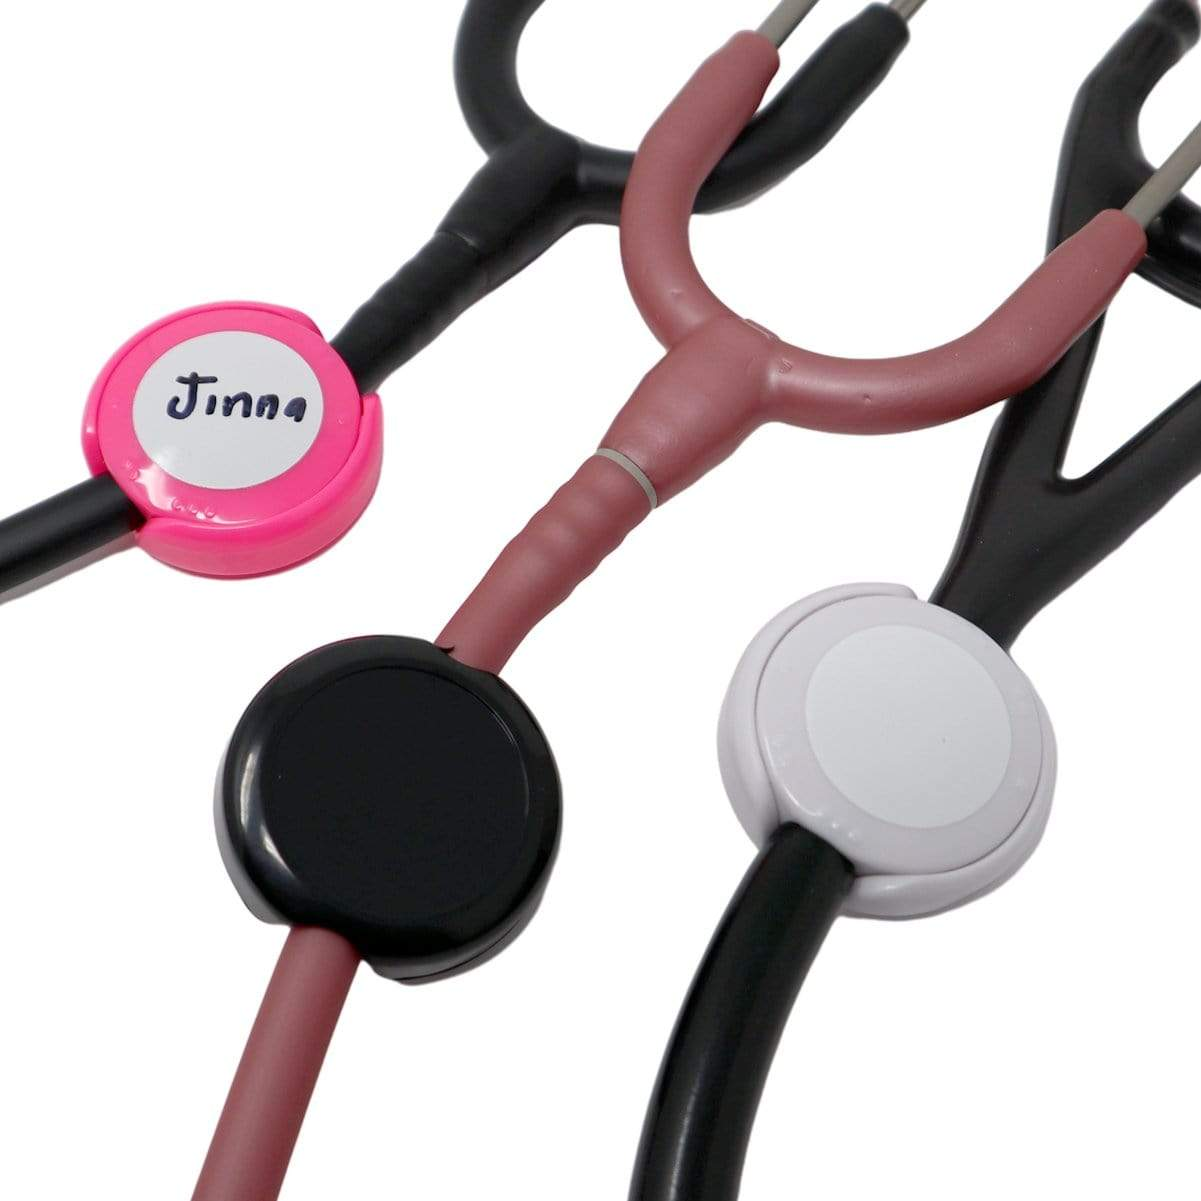 Antimicrobial Stethoscope ID Tag - Customizable Label & Adjustable Tube Size to Fit Most Stehs